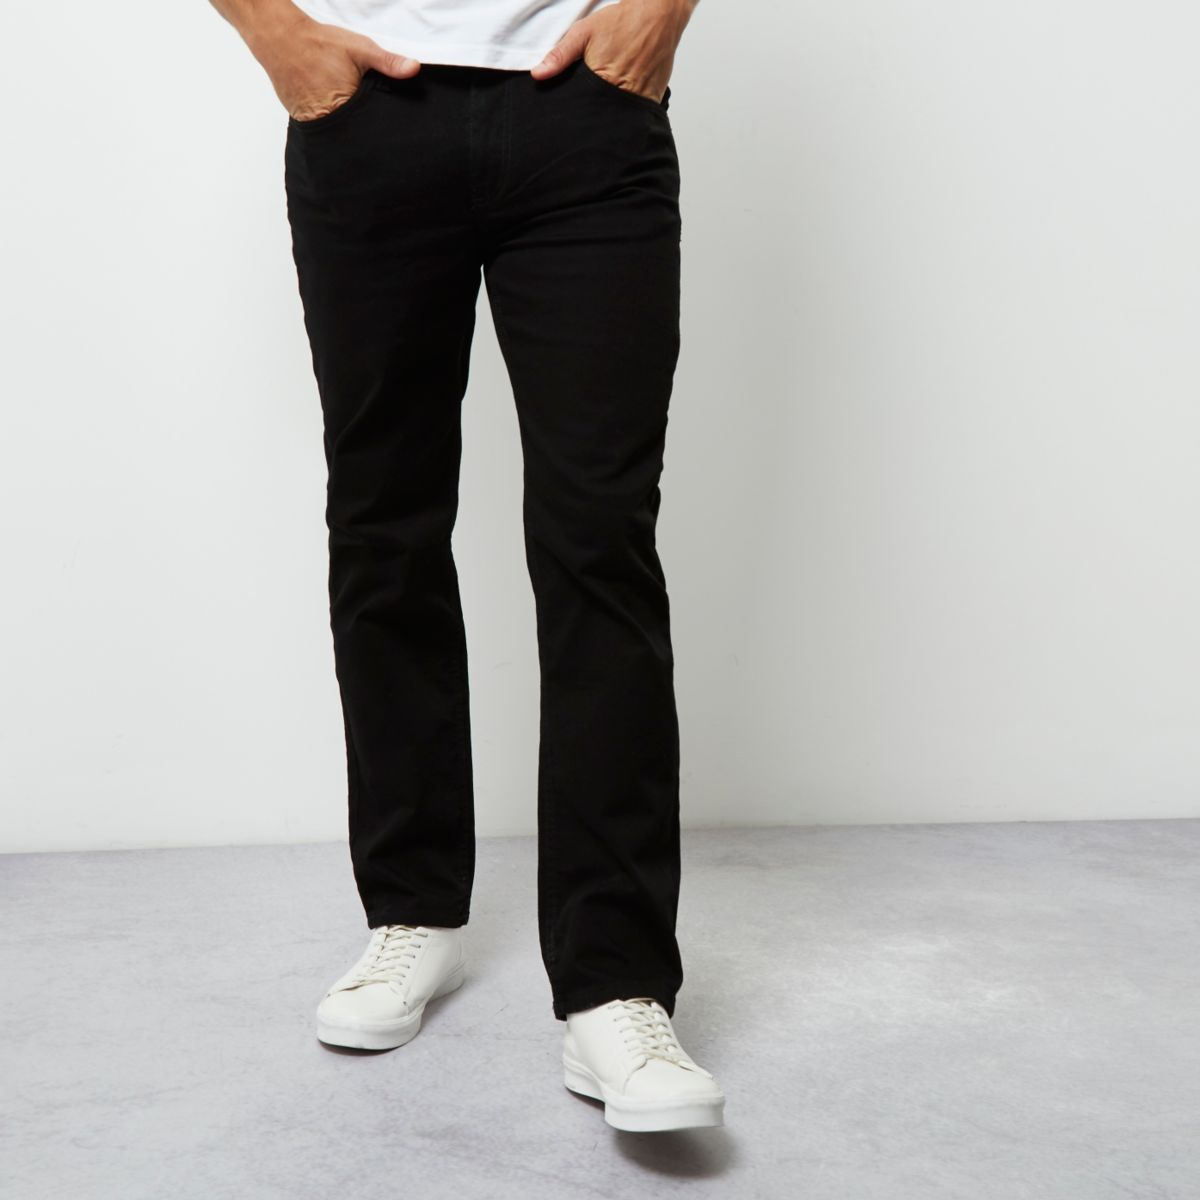 Shop Men's Levi's Straight-leg jeans on Lyst. Track over Levi's Straight-leg jeans for stock and sale updates.